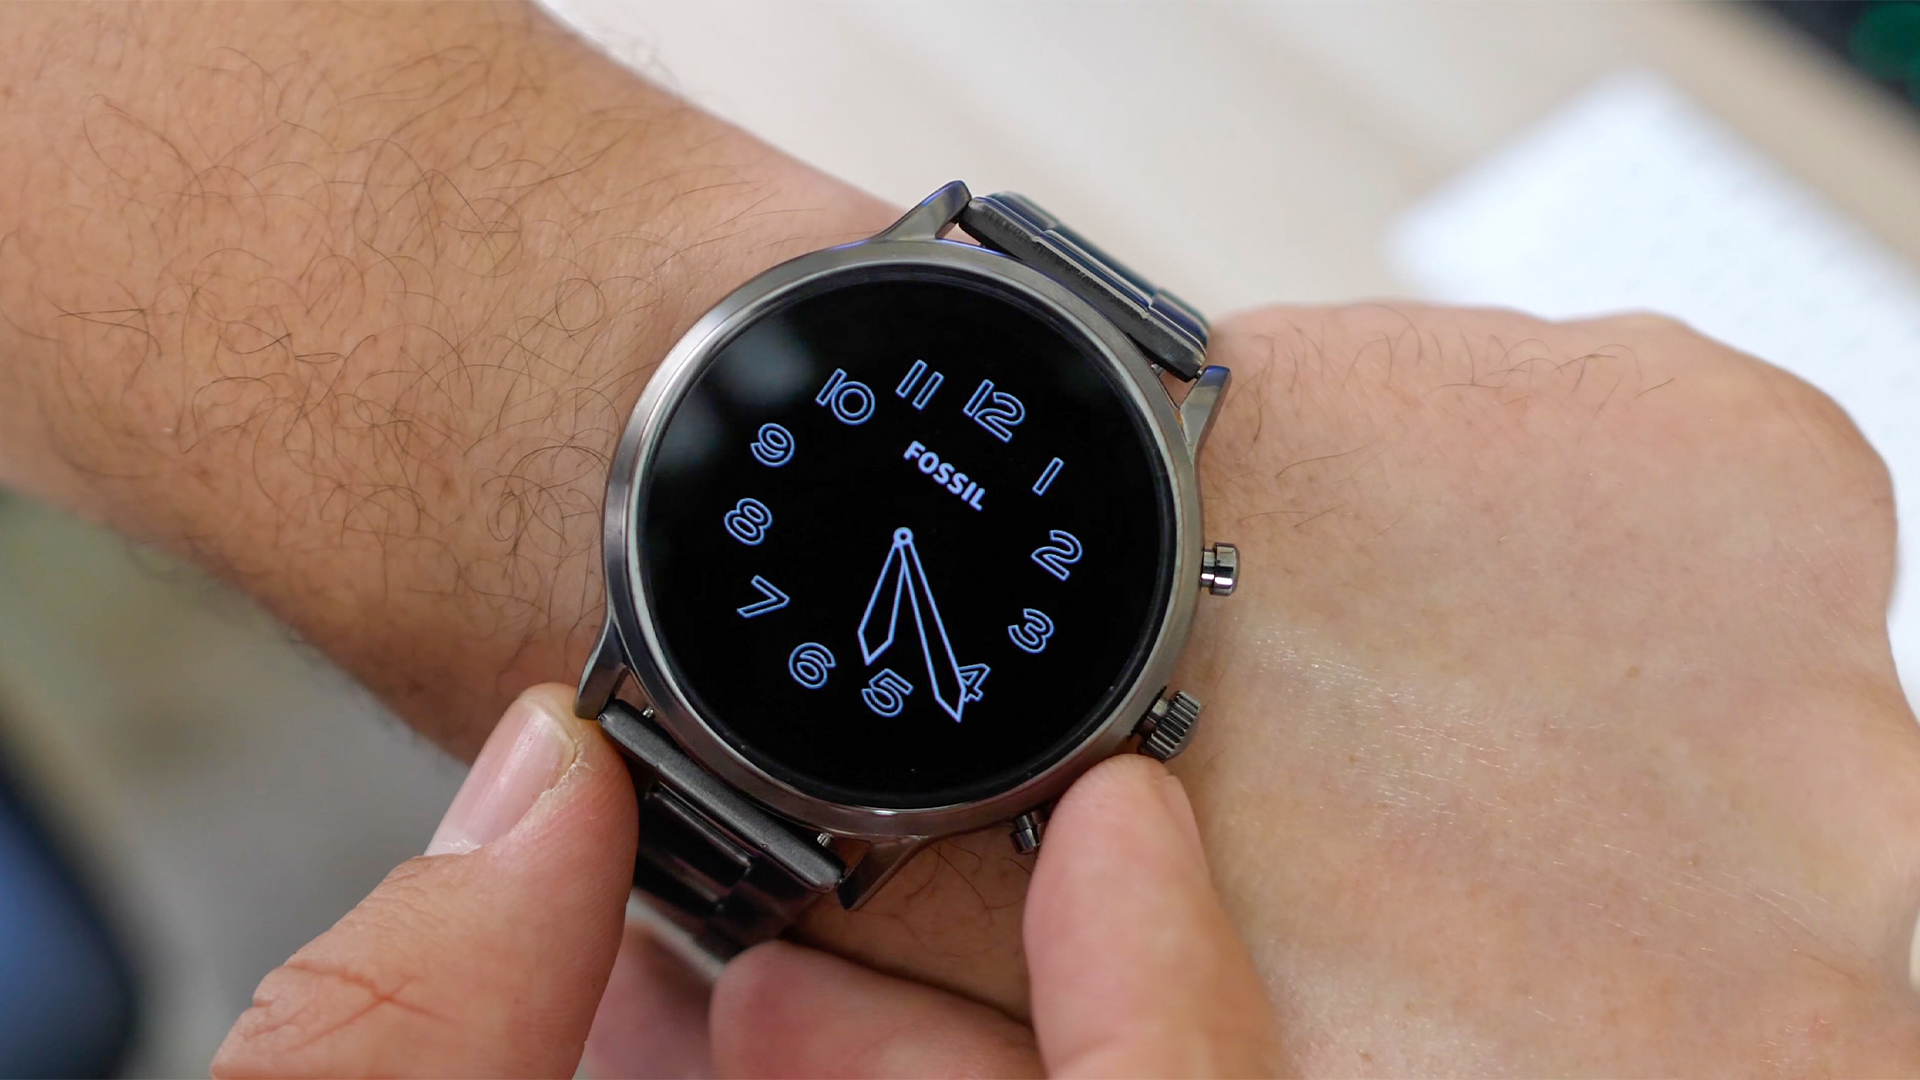 Qualcomm: Current chips support new WearOS / Google: Not so fast!